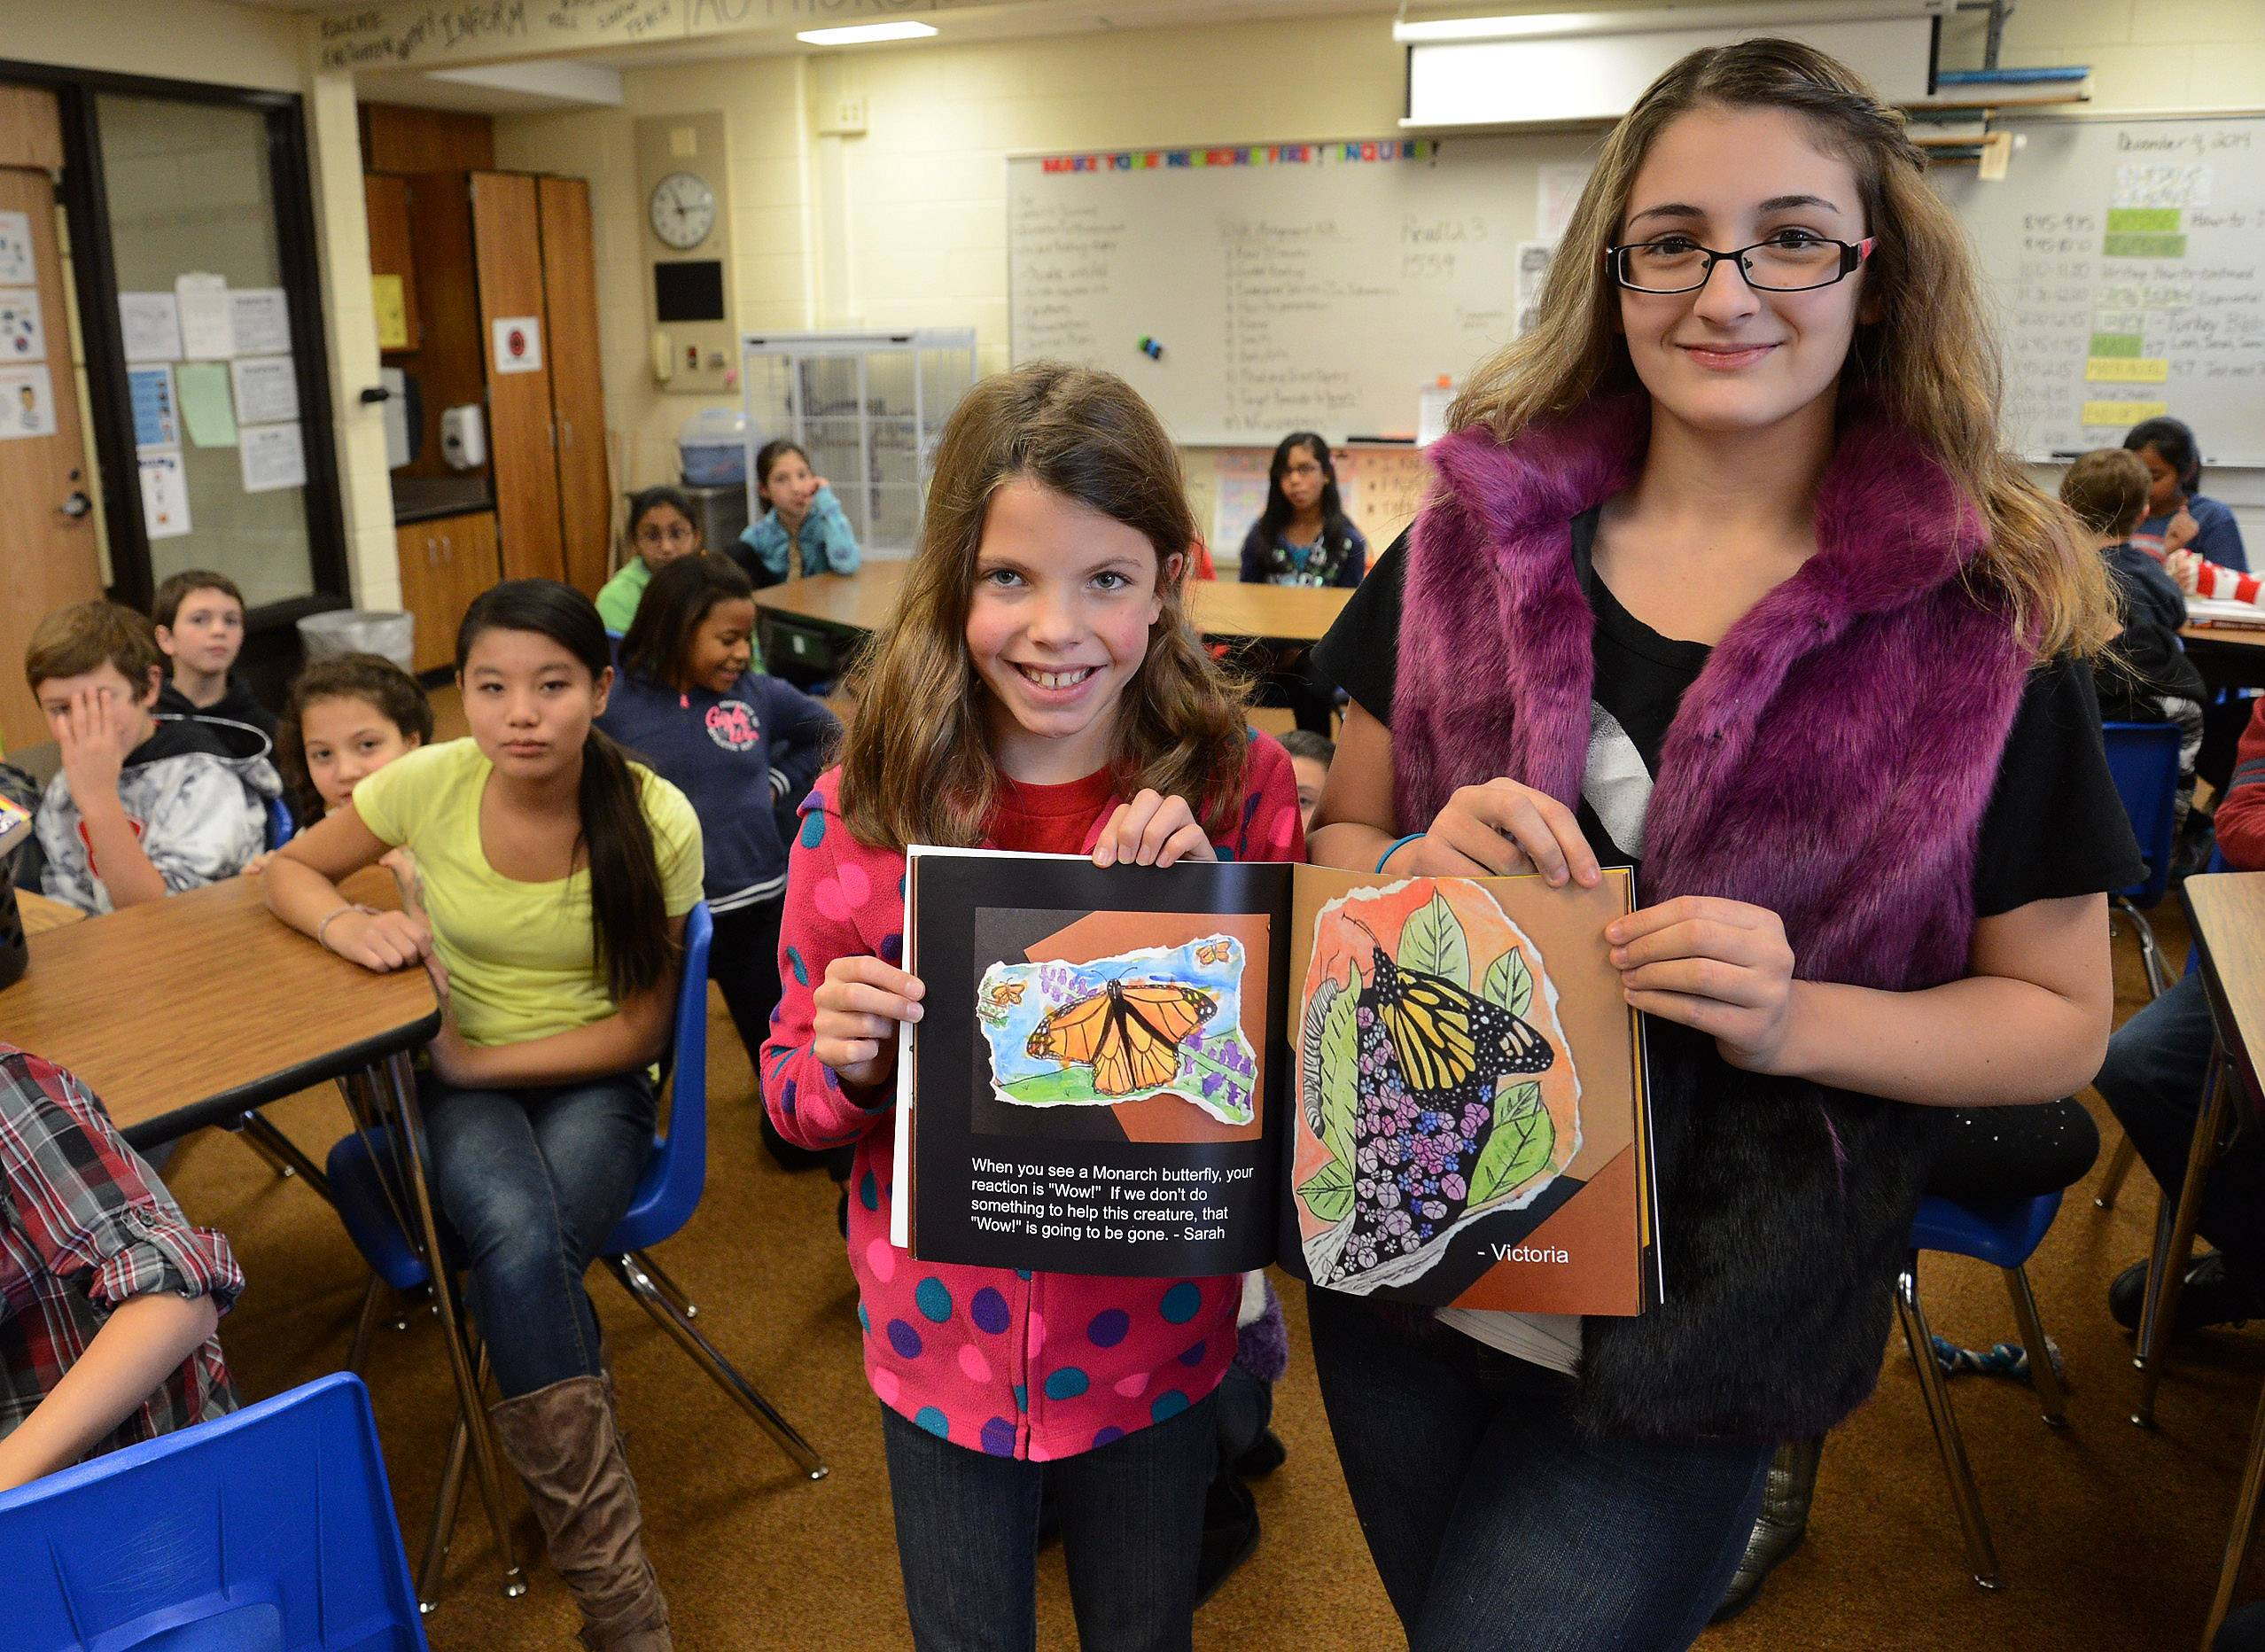 Sarah Carr, left, and Victoria Atanassova show their drawings that are part of an illustrated book their class produced as part of the monarch butterfly project at Michael Collins Elementary School in Schaumburg.